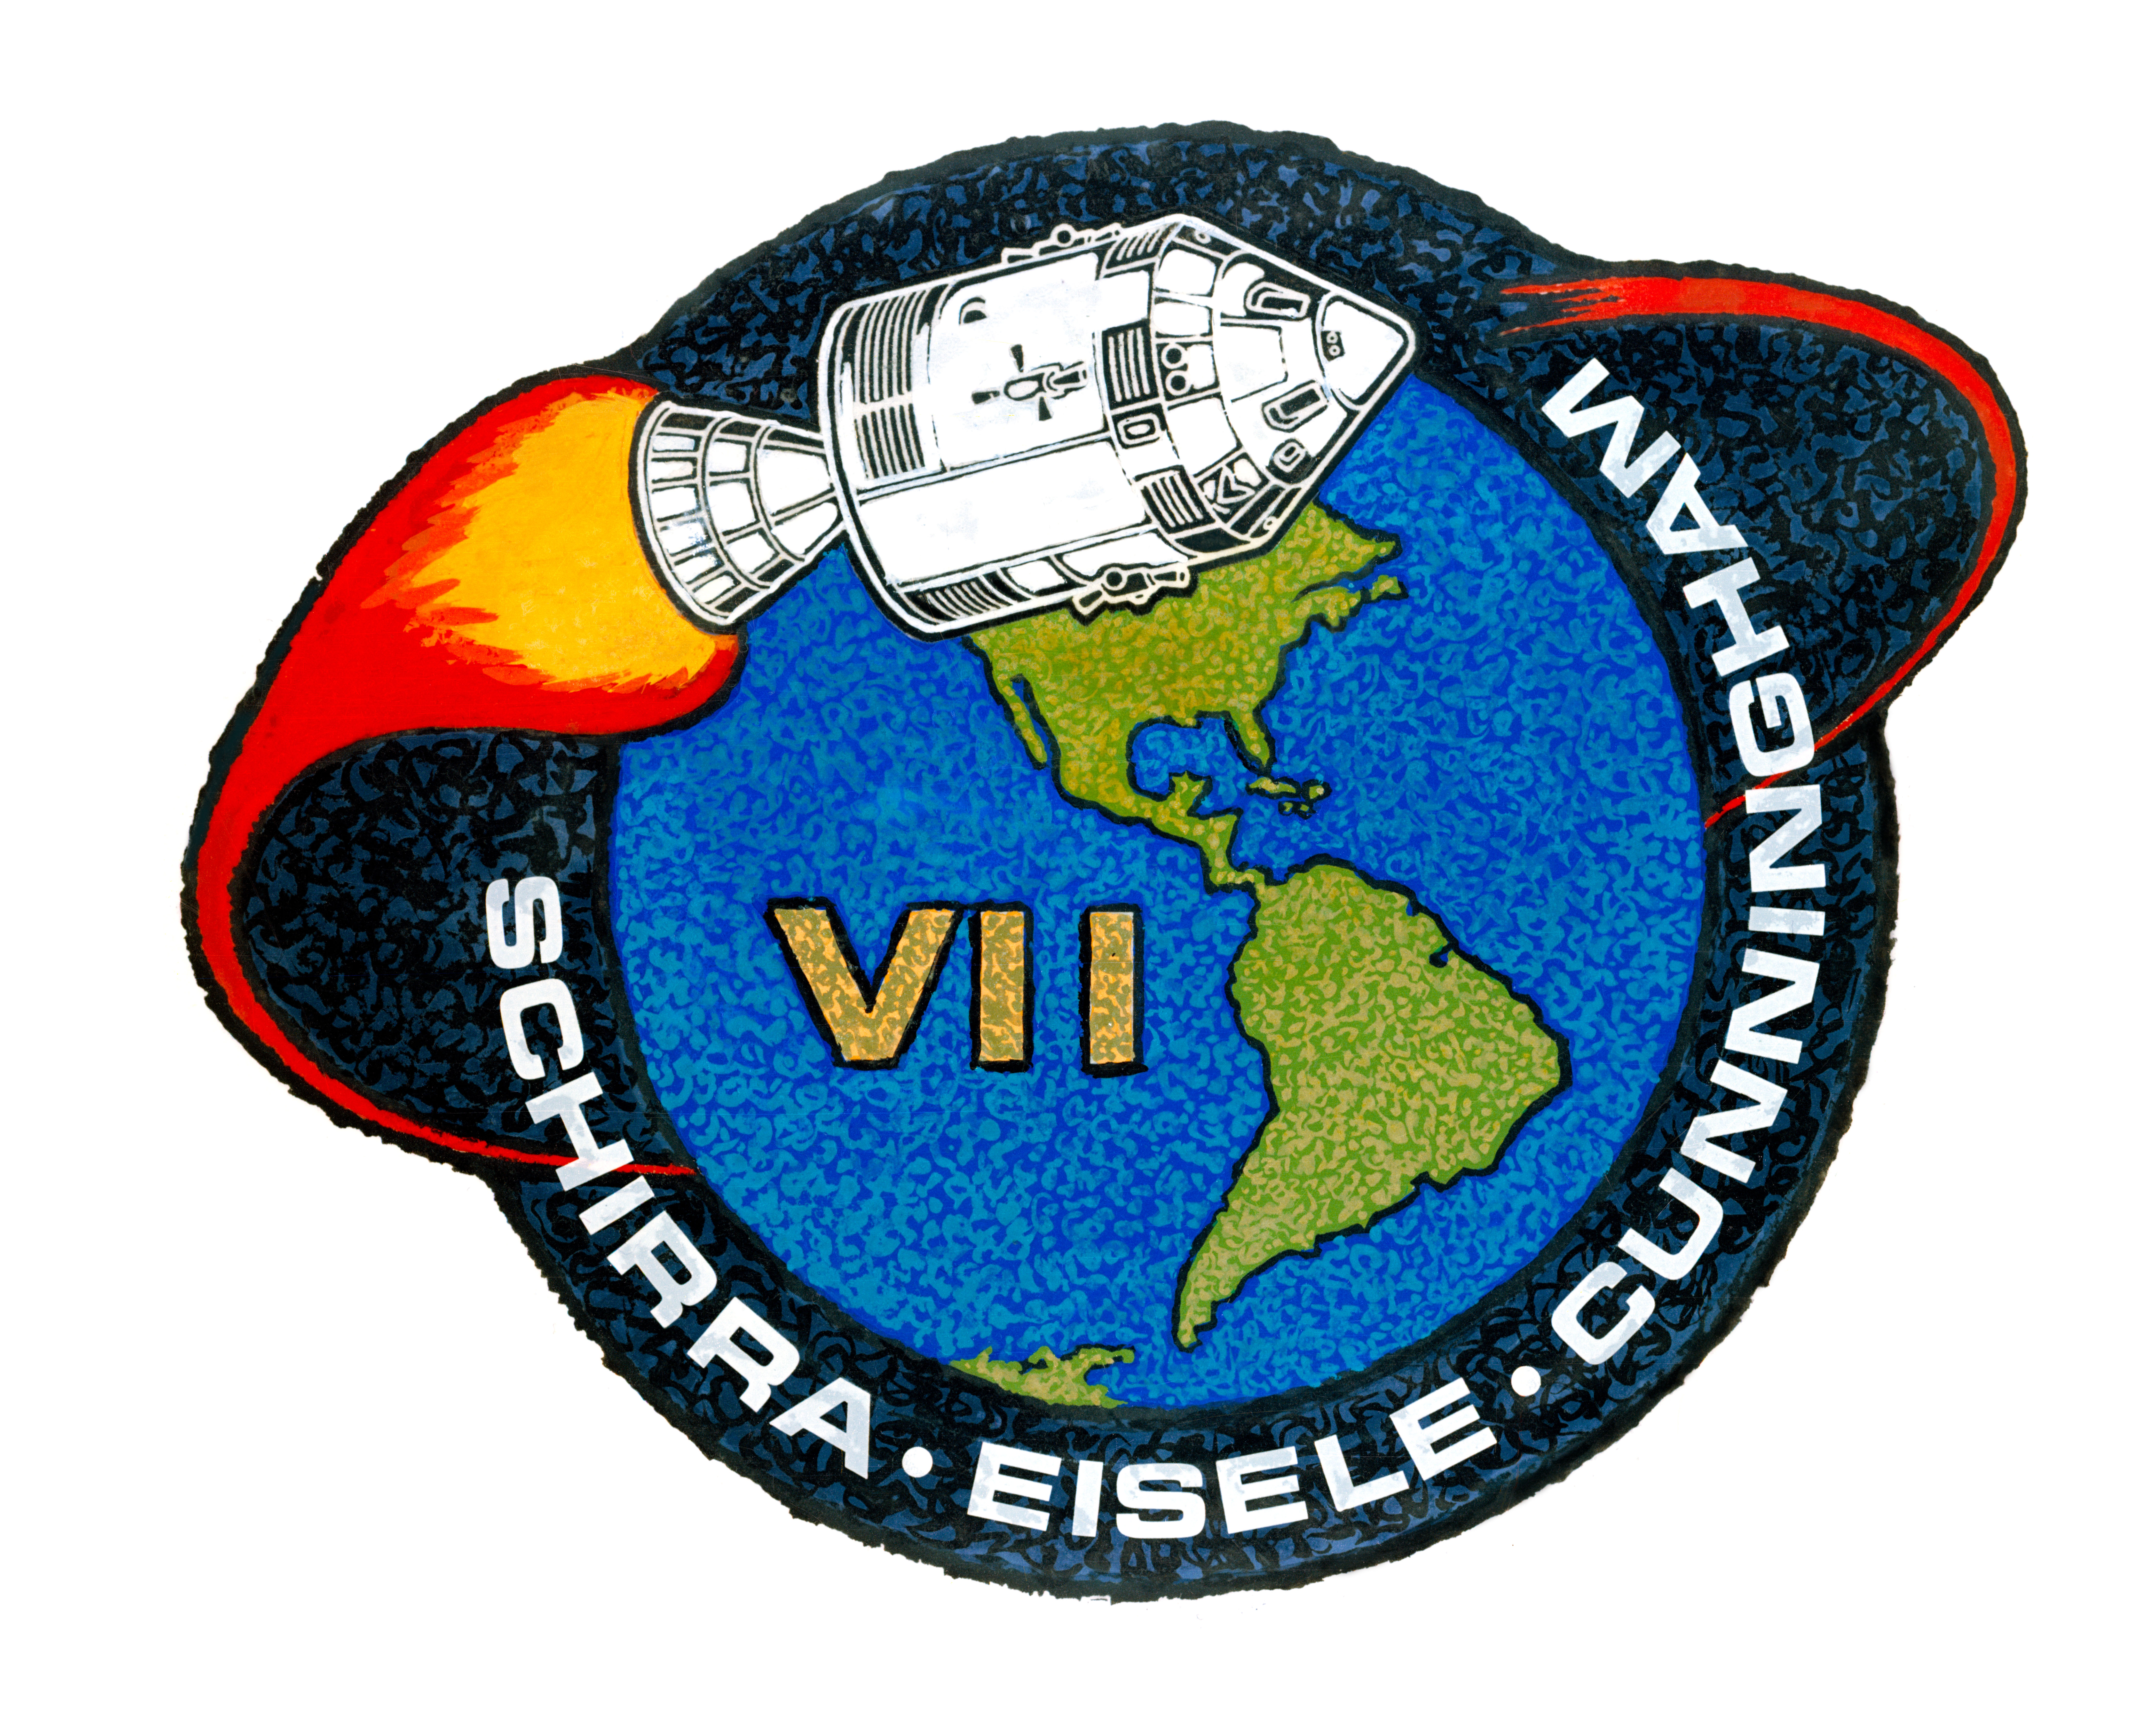 Apollo Program Mission Patches